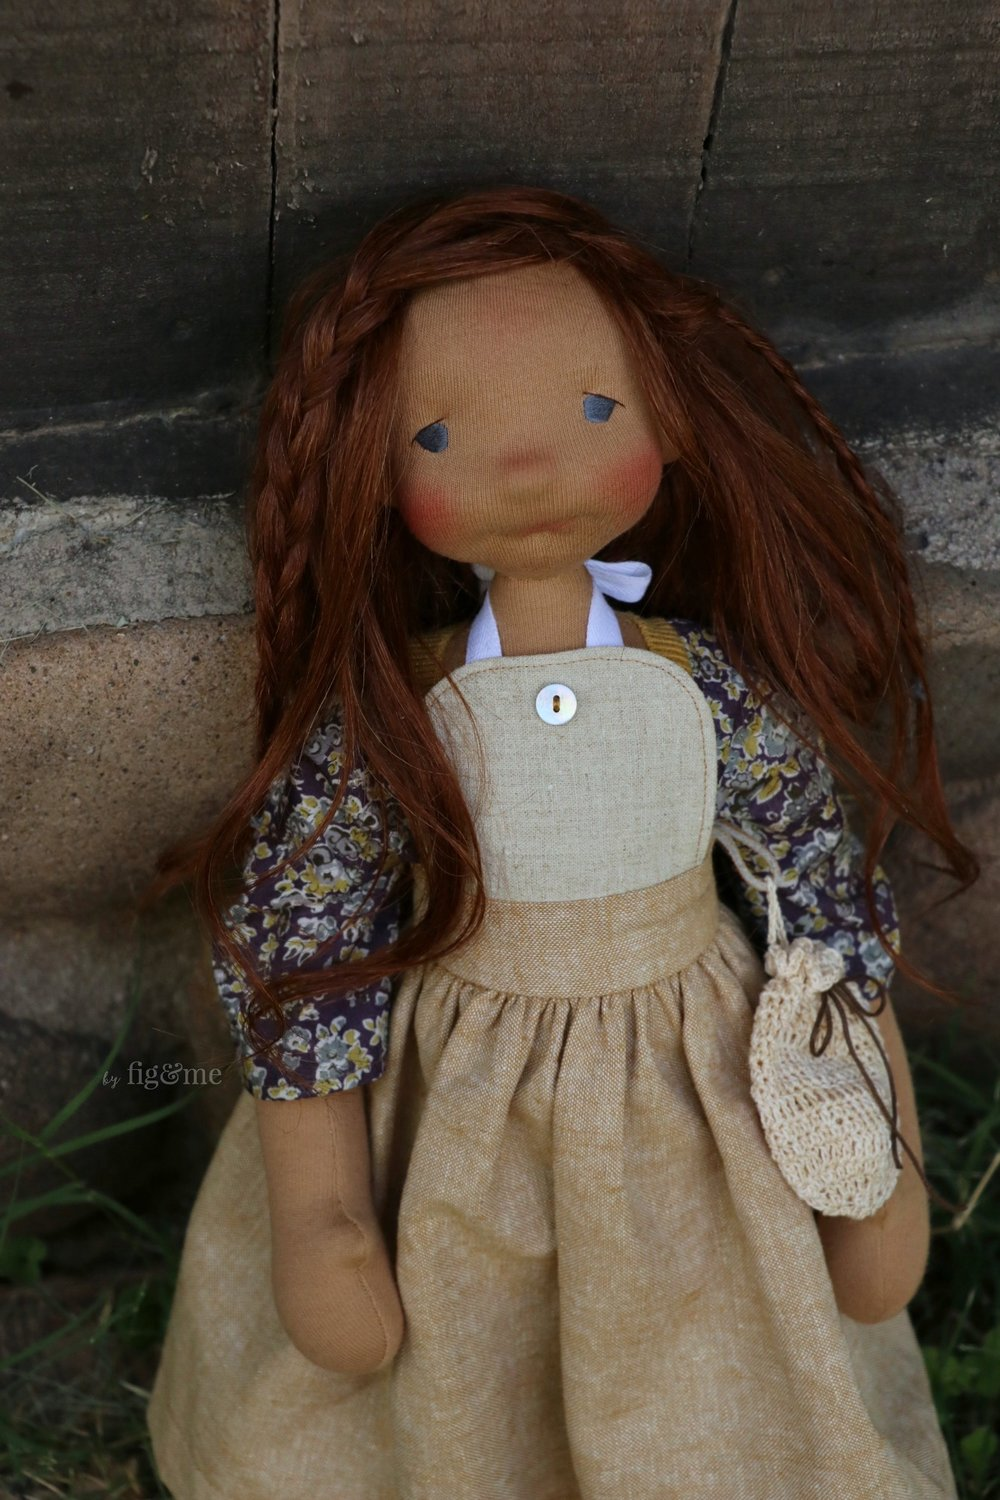 Starting your dollmaking adventure, supplies and tips to get started (via Fig and me).